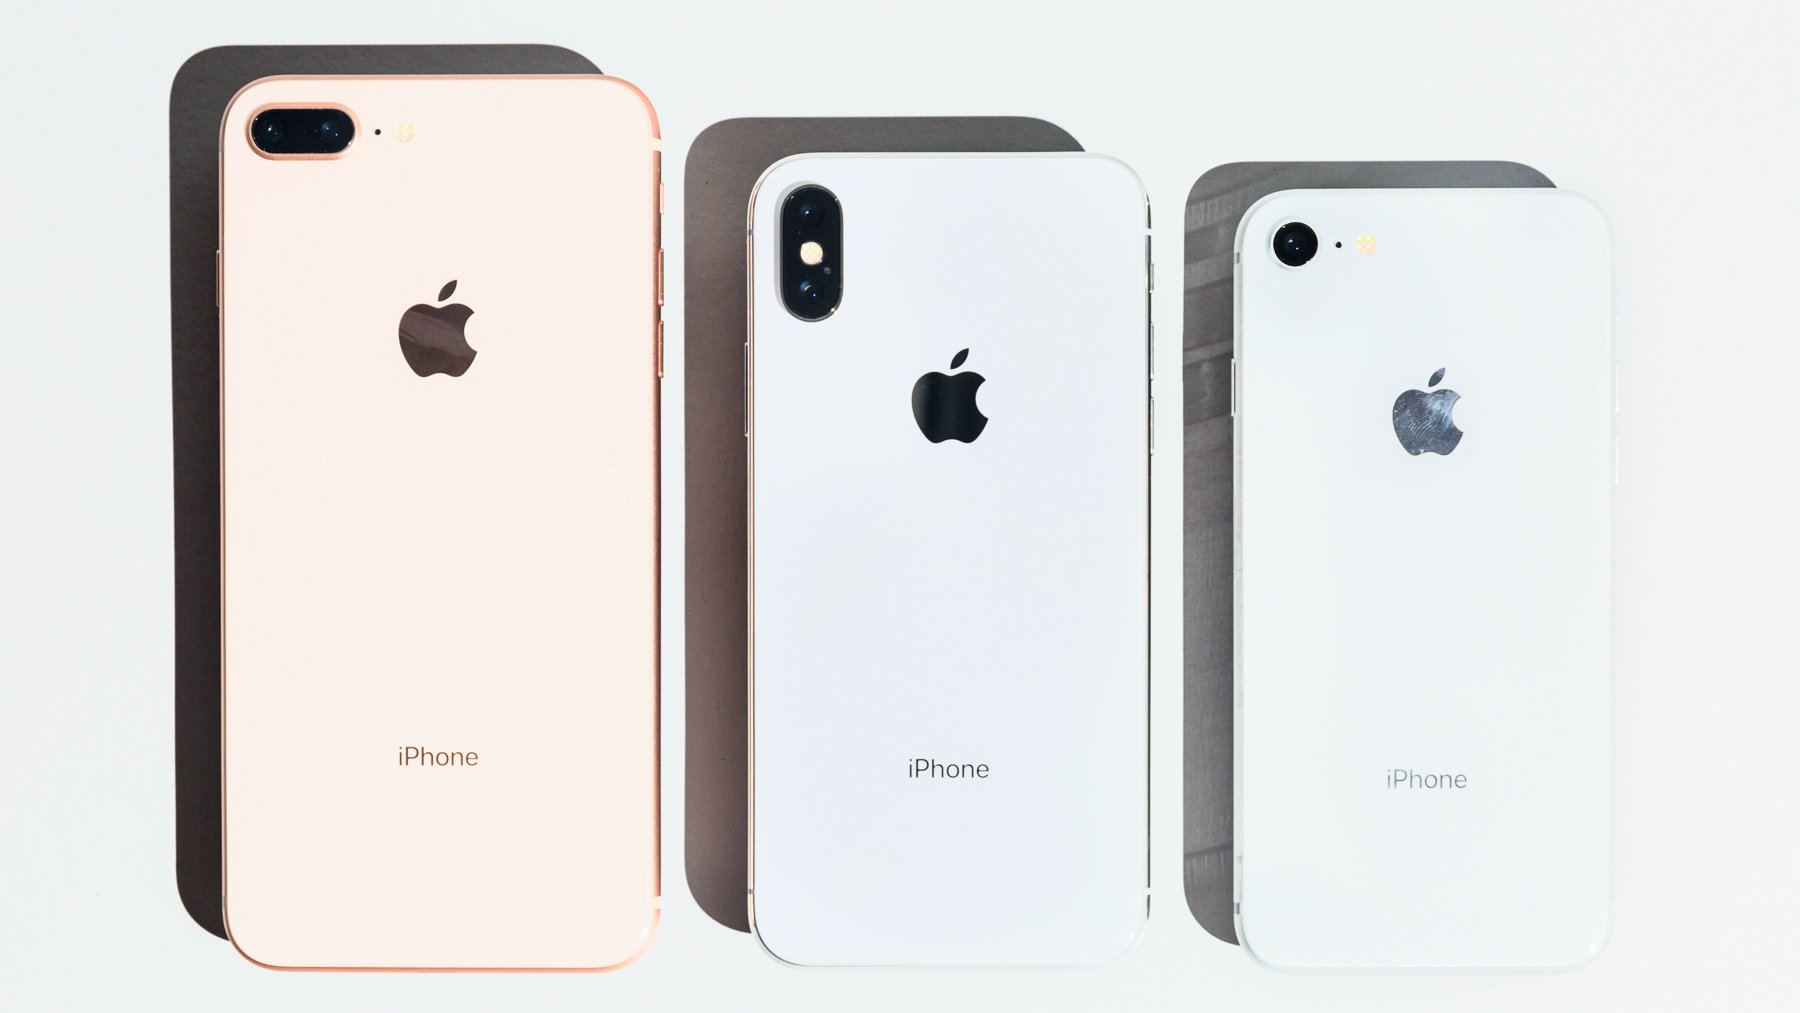 iPhone 8 Plus, iPhone X and iPhone 8